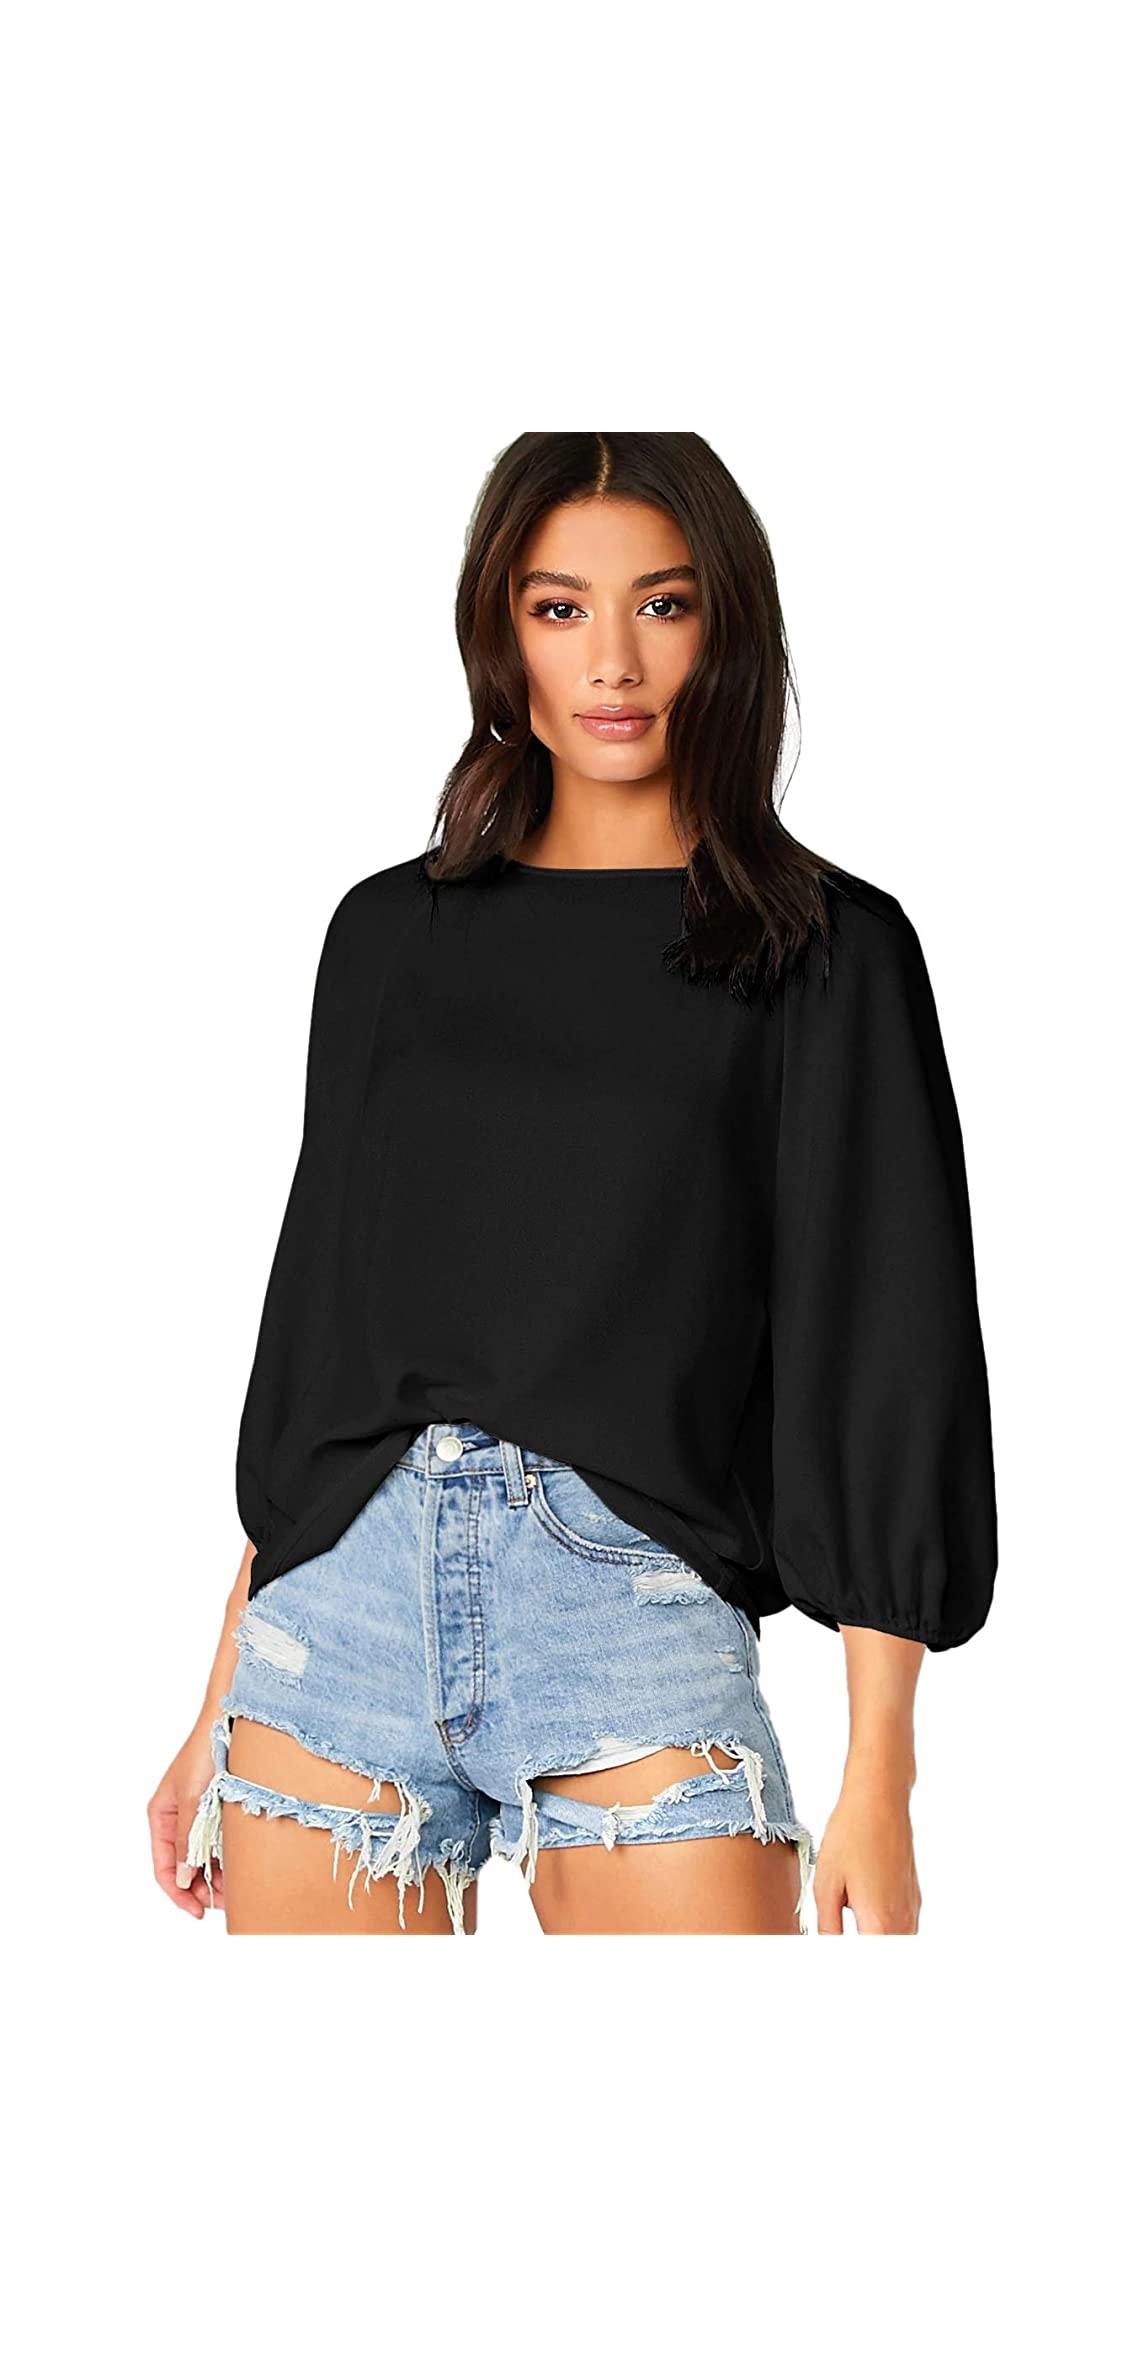 Women's Casual Bishop / Sleeve Solid Blouse Round Neck